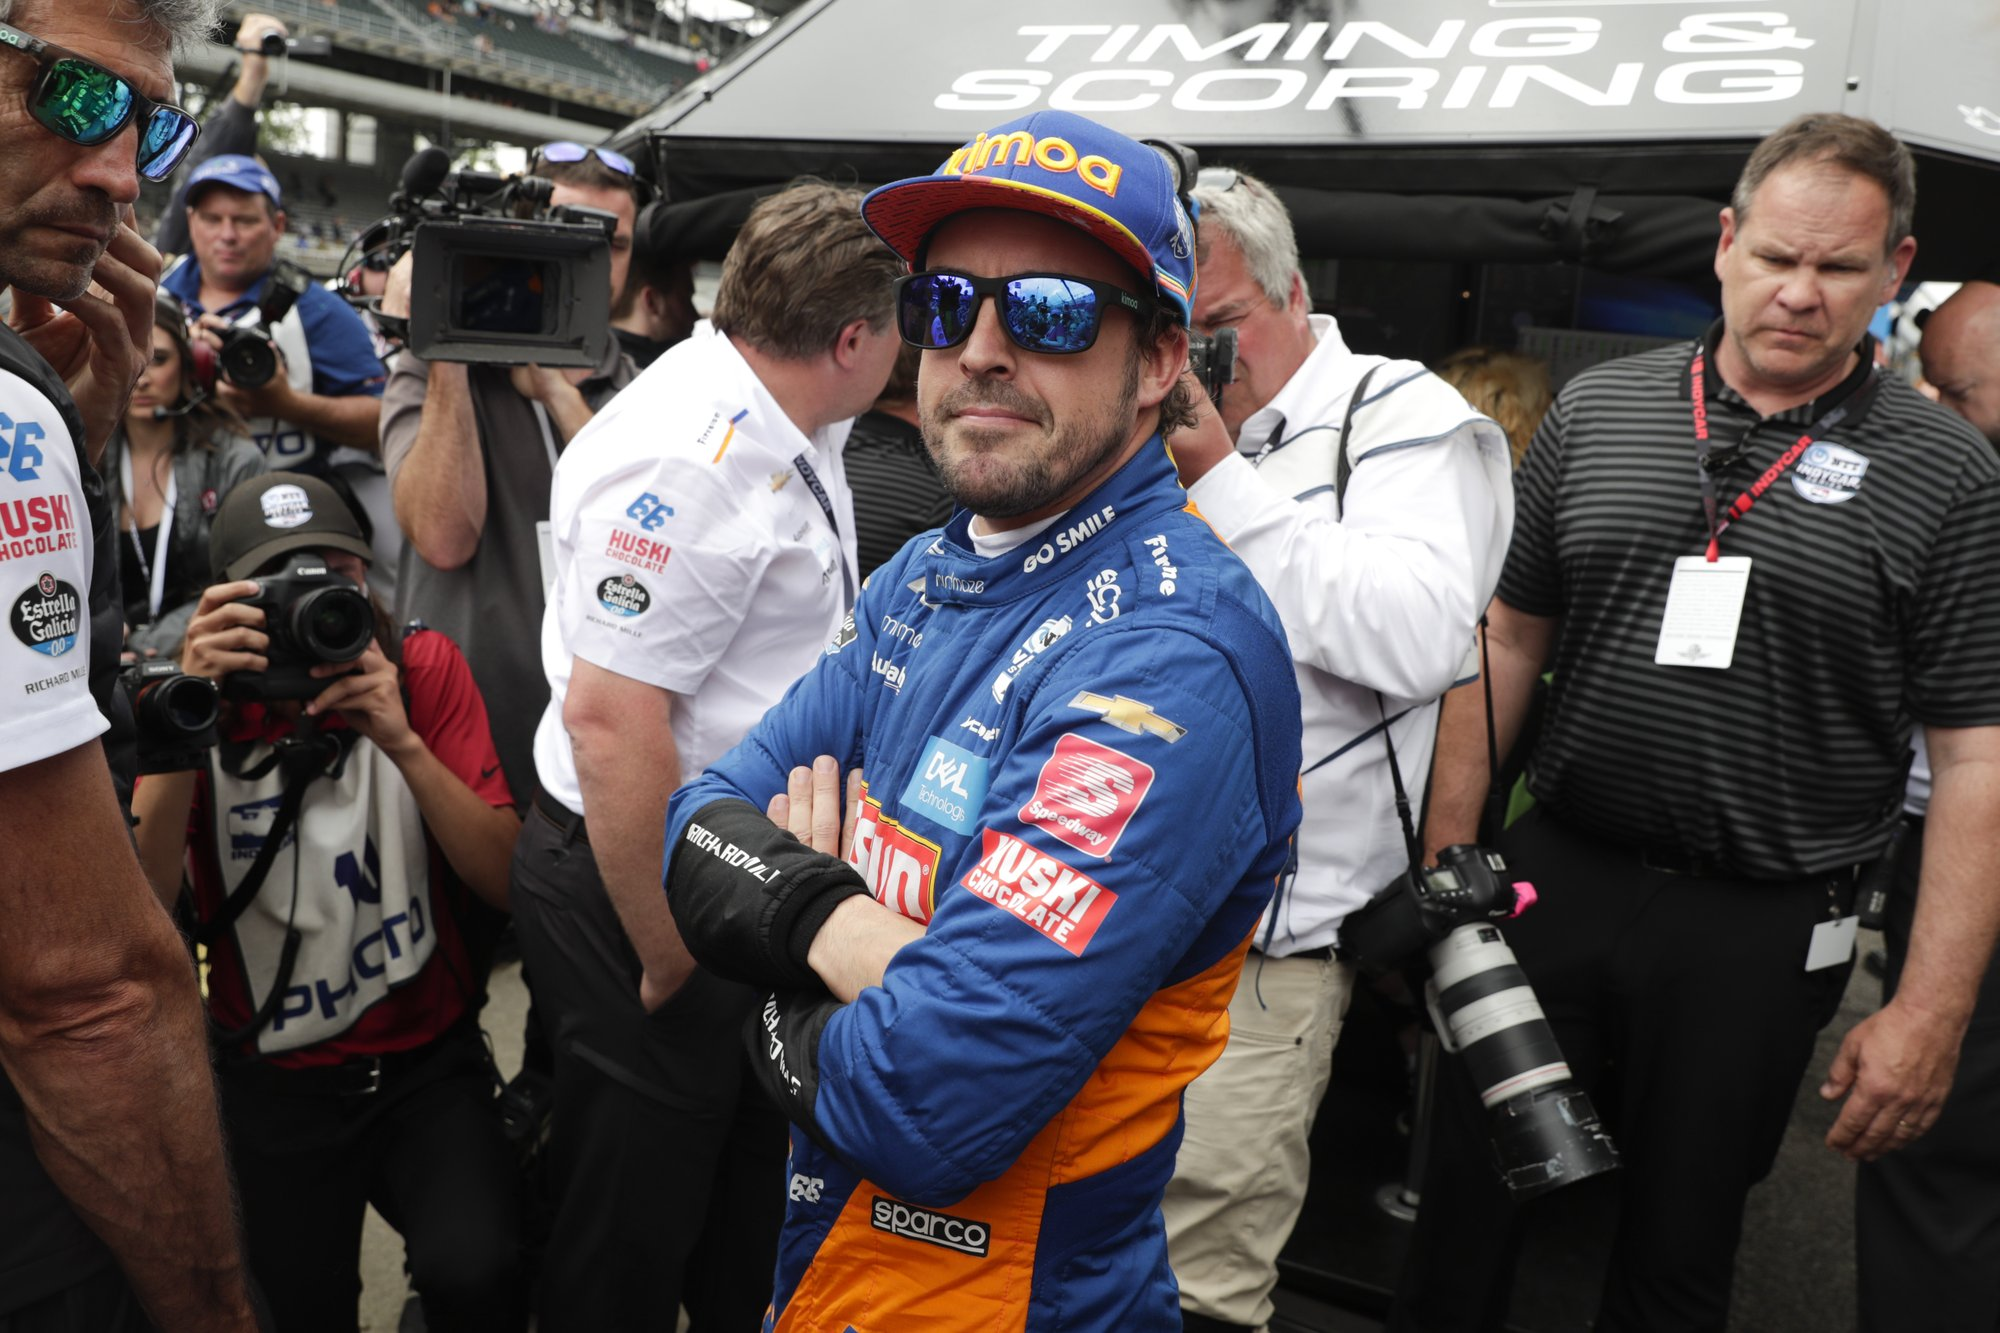 McLaren's failed Indy 500 effort was a comedy of errors